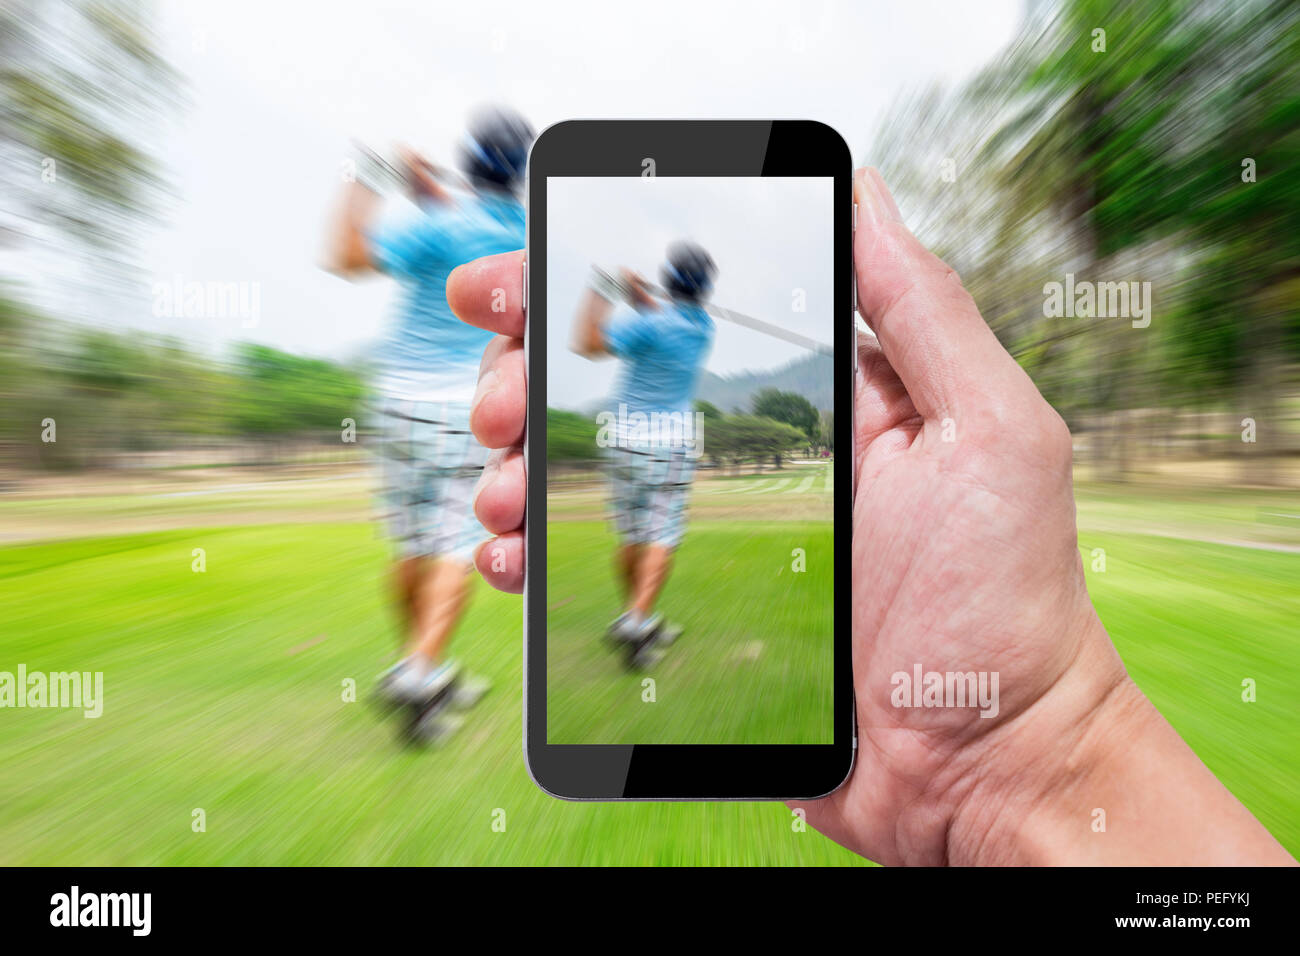 One using camera in smartphone capture still photo and record motion video when other swinging on golf teeing ground. - Stock Image